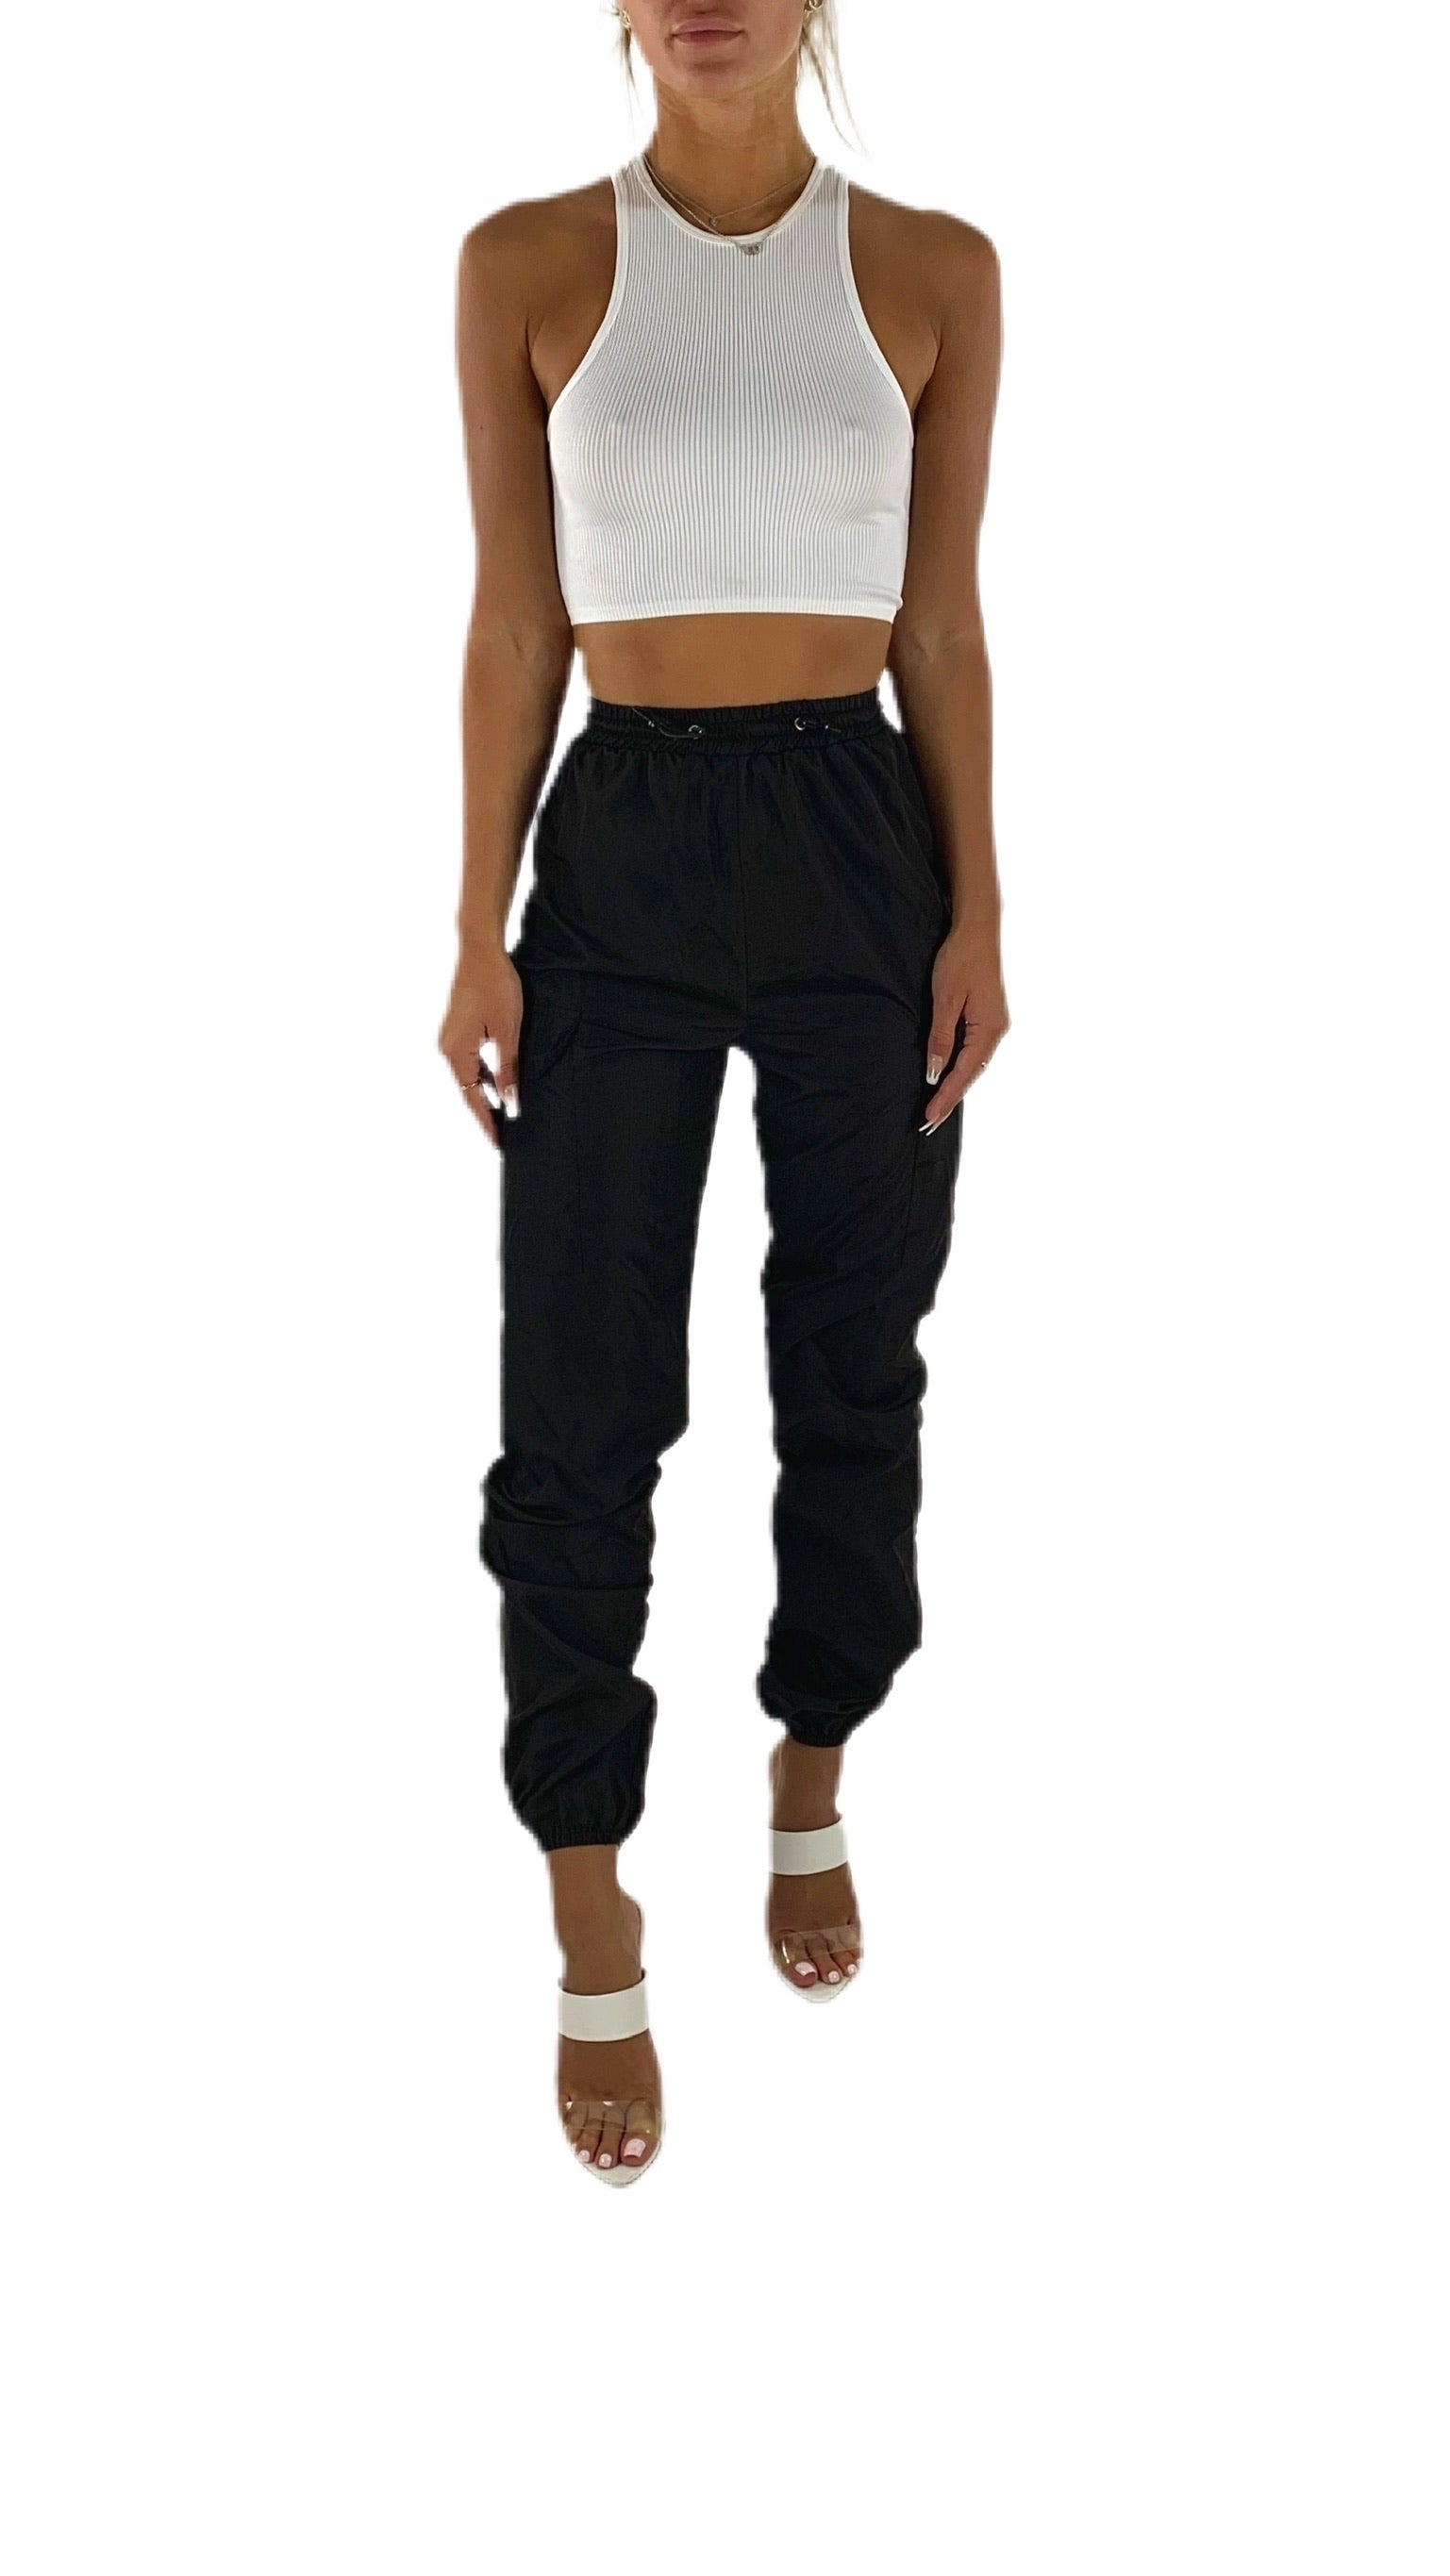 Charger Pant